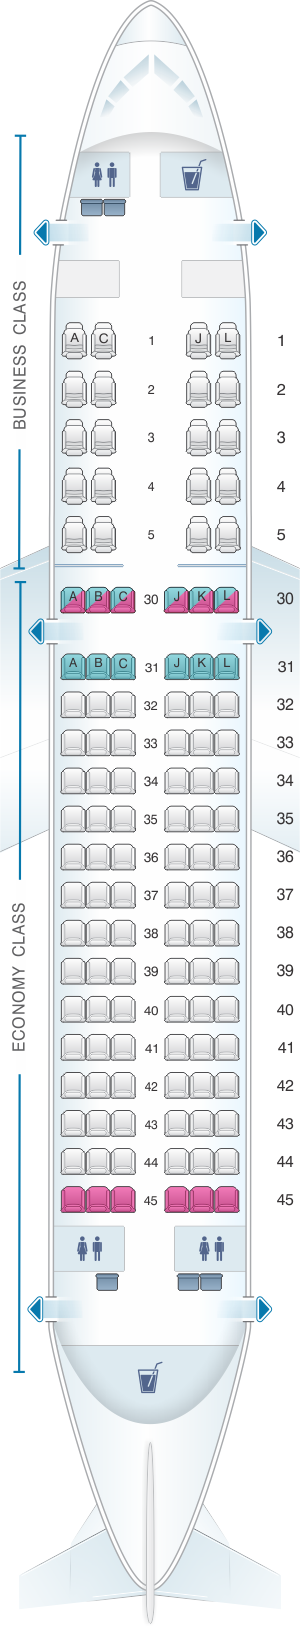 Seat map for Saudi Arabian Airlines Airbus A320 200 Business